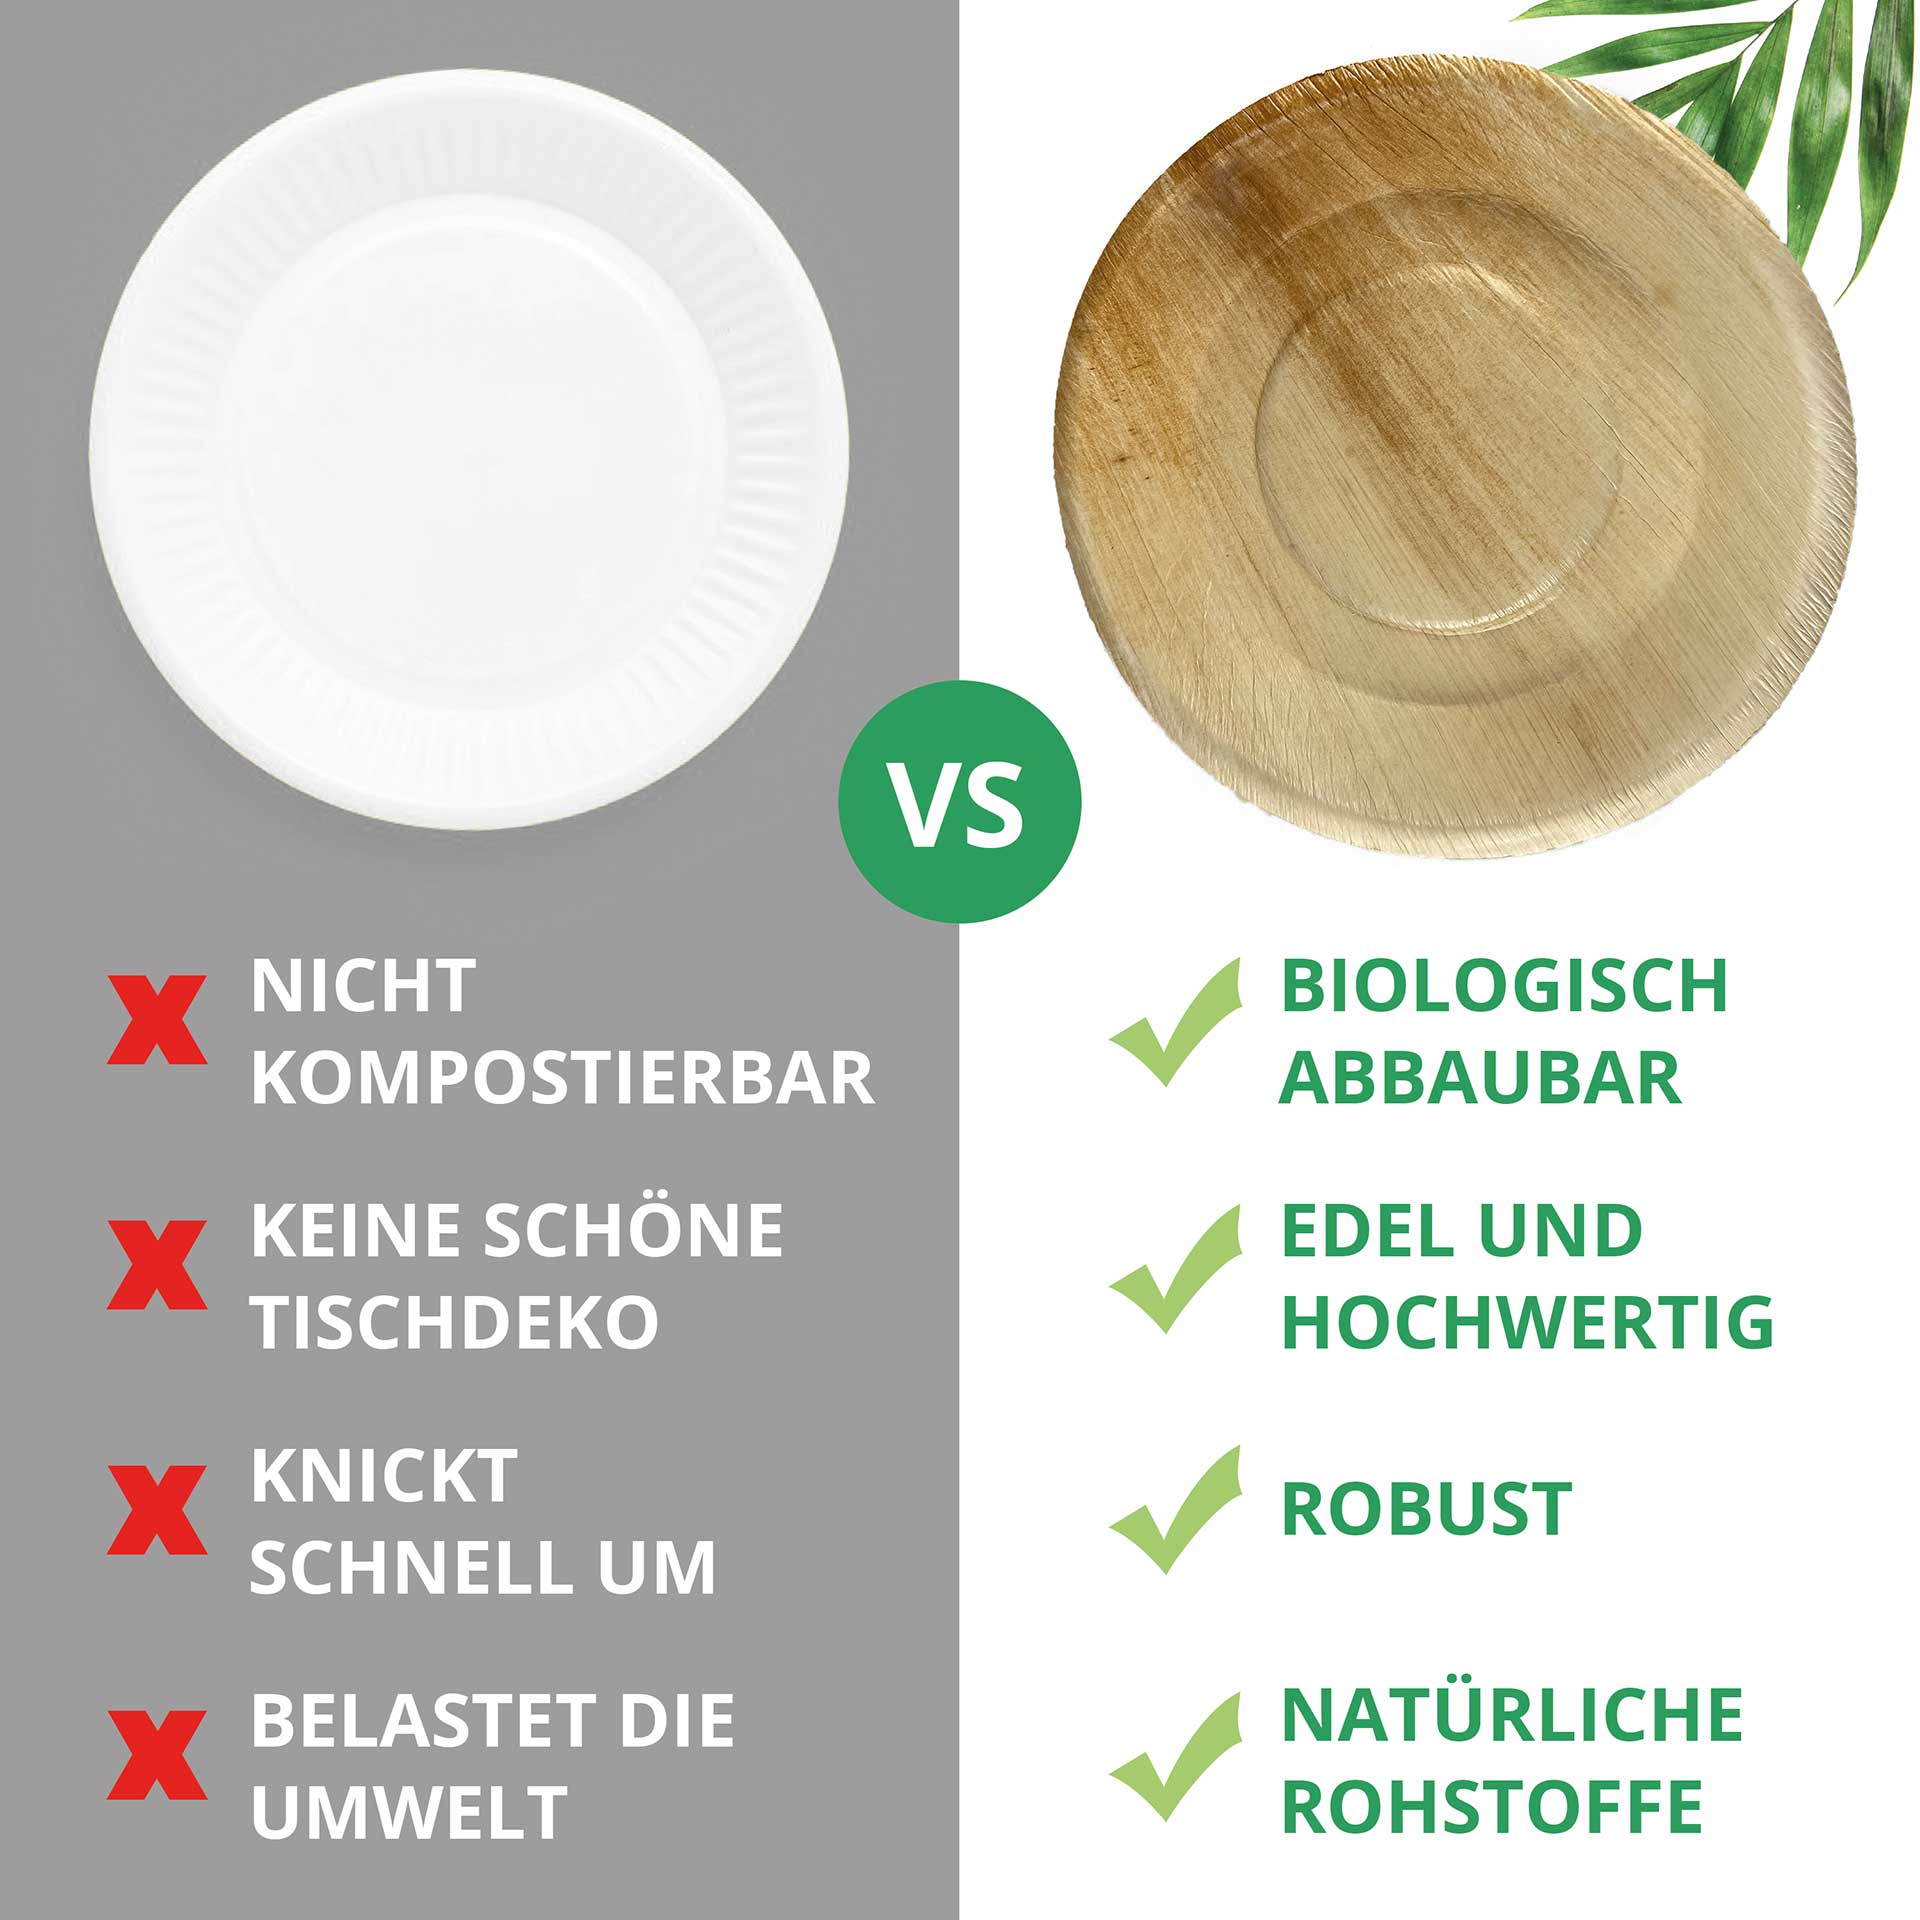 Palm leaf products in comparison